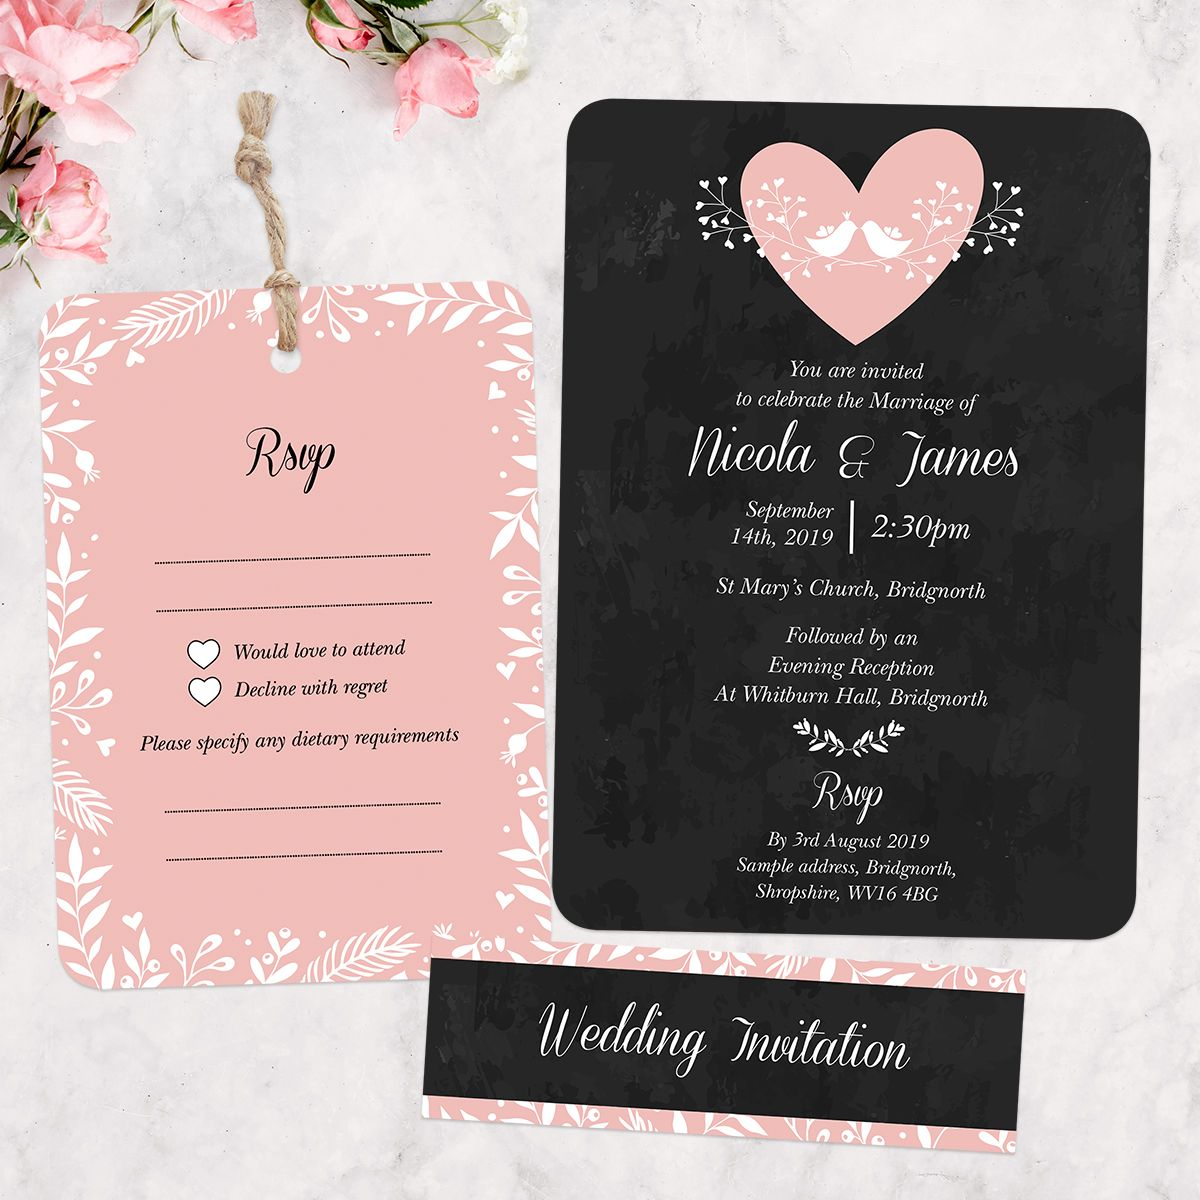 sample wording for rsvp wedding invitations%0A Chalkboard Botanical Love Birds  Boutique Wedding Invitation  u     RSVP by  Tree of Hearts         each  Personalise the wording and choose your own  colour for